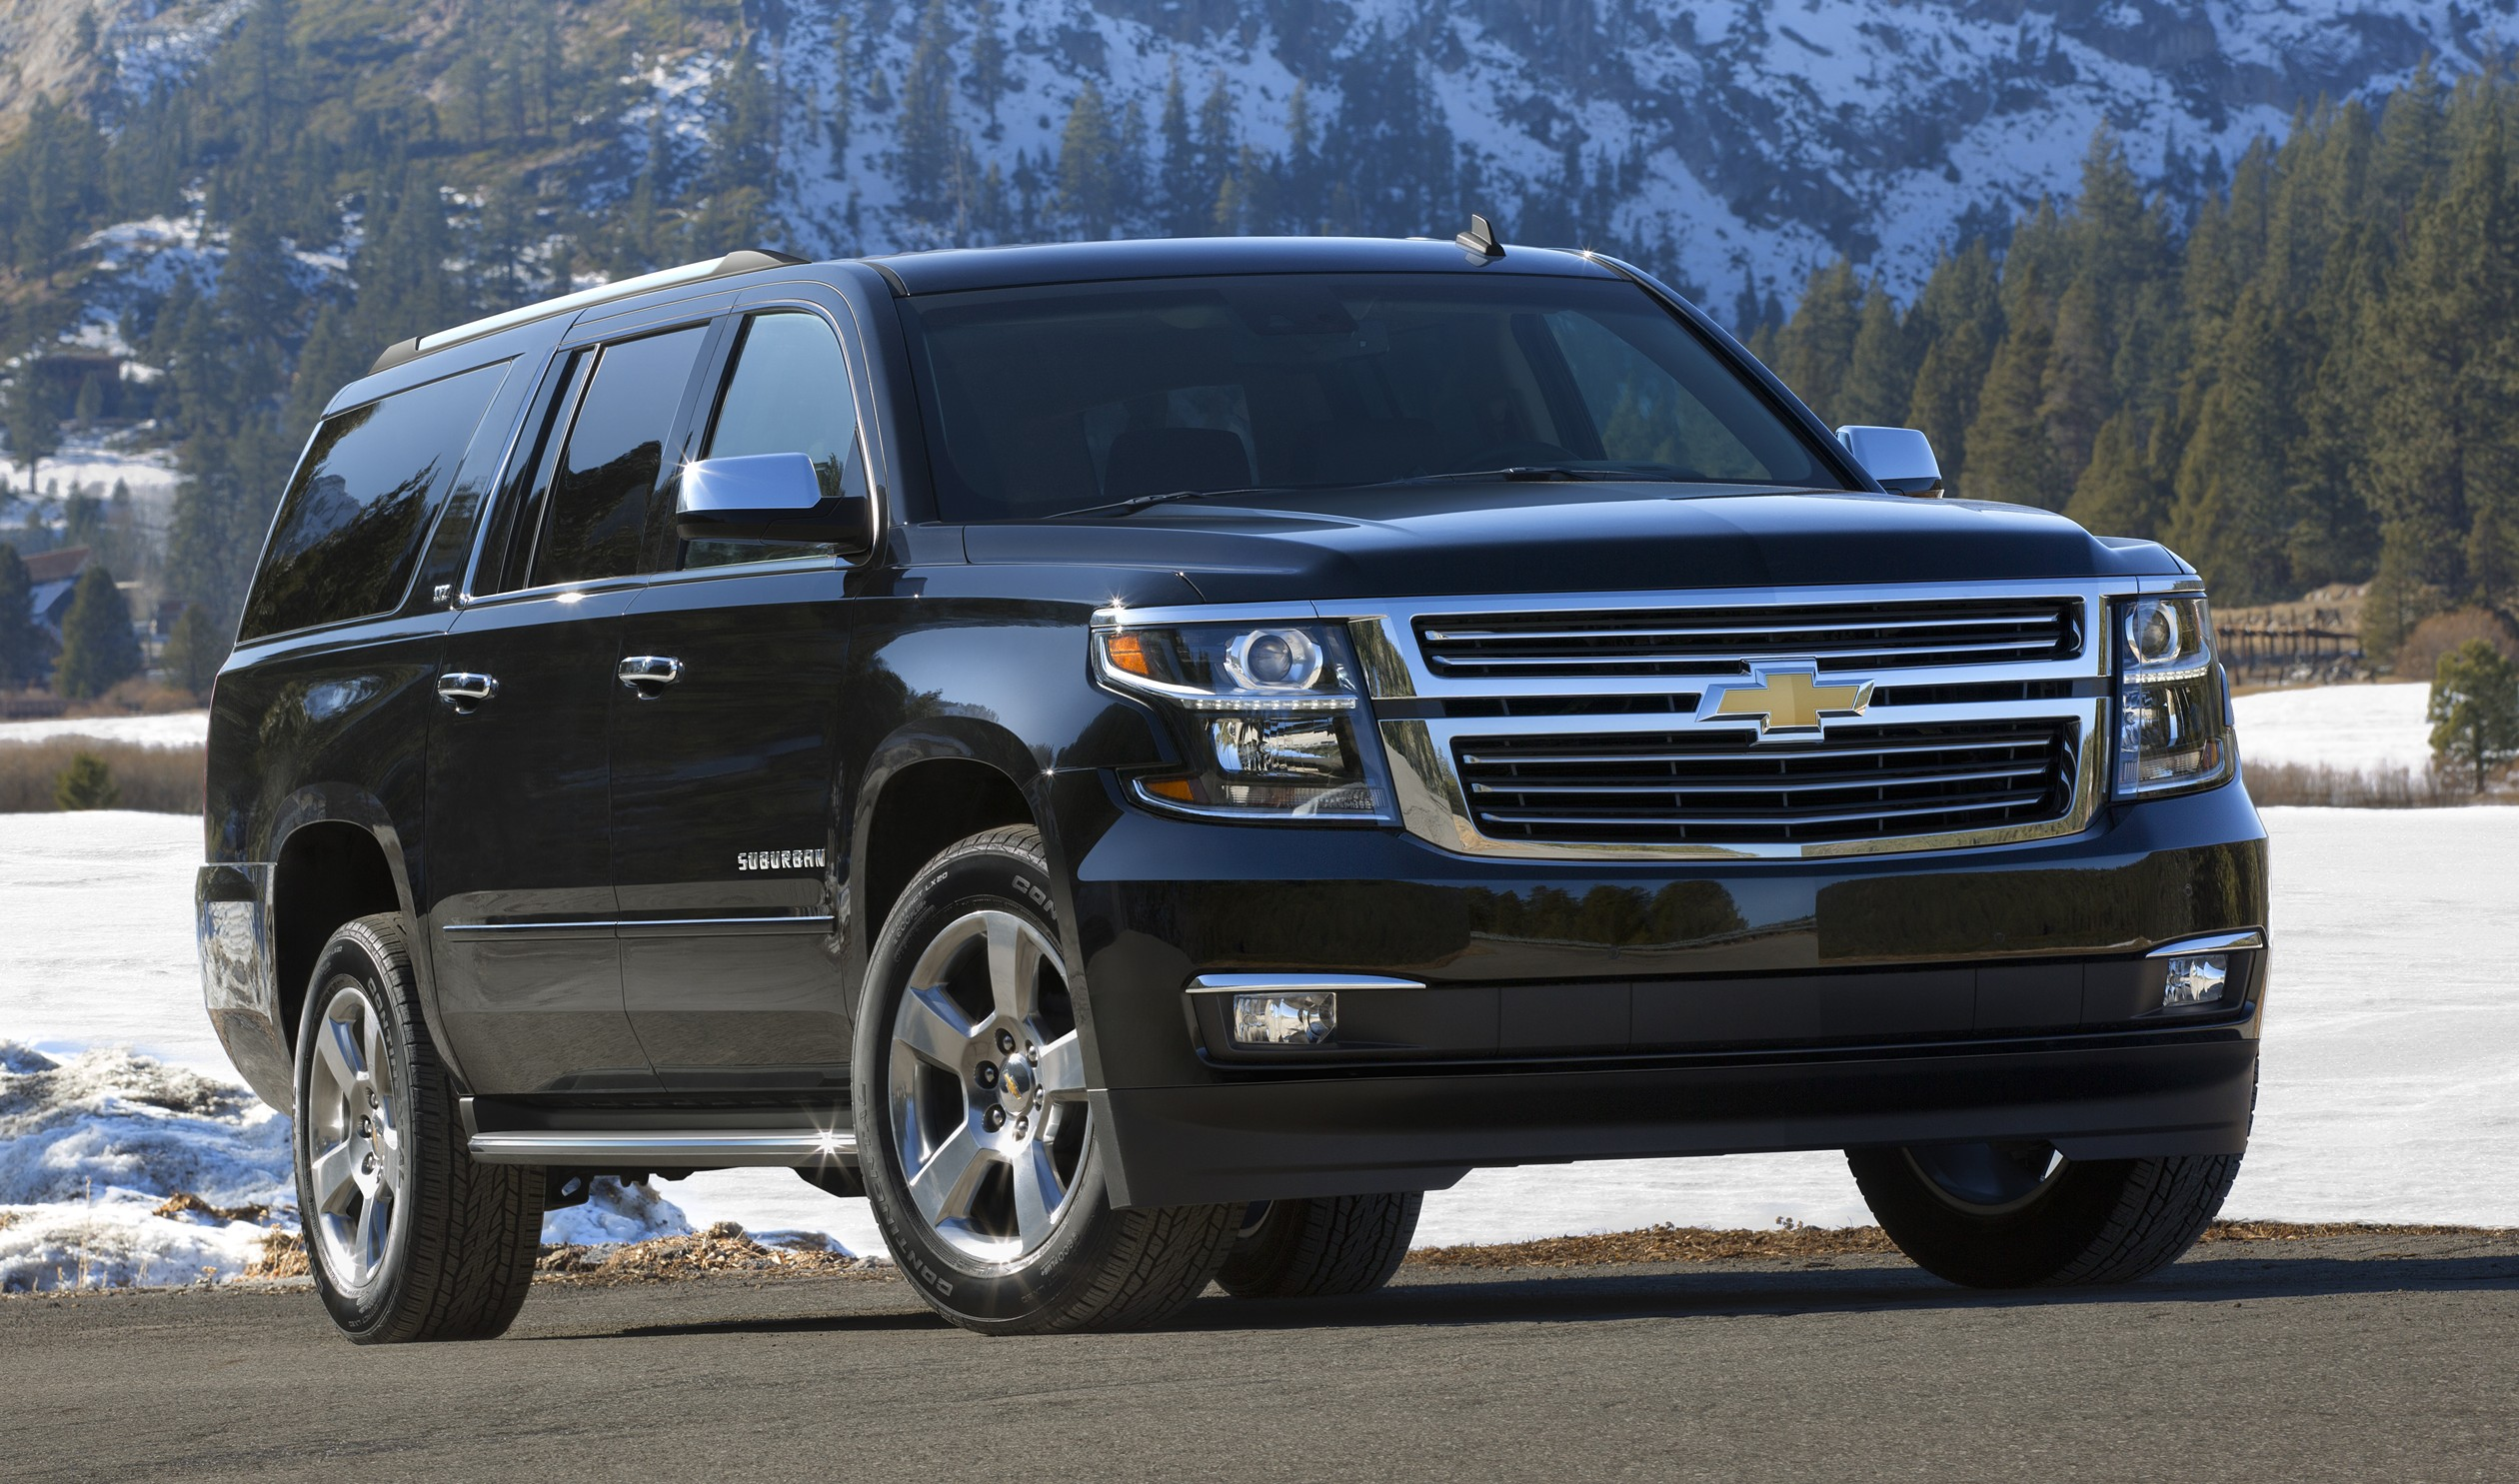 2015 Chevrolet Suburban in Black Front Passenger Side in Lake Ta